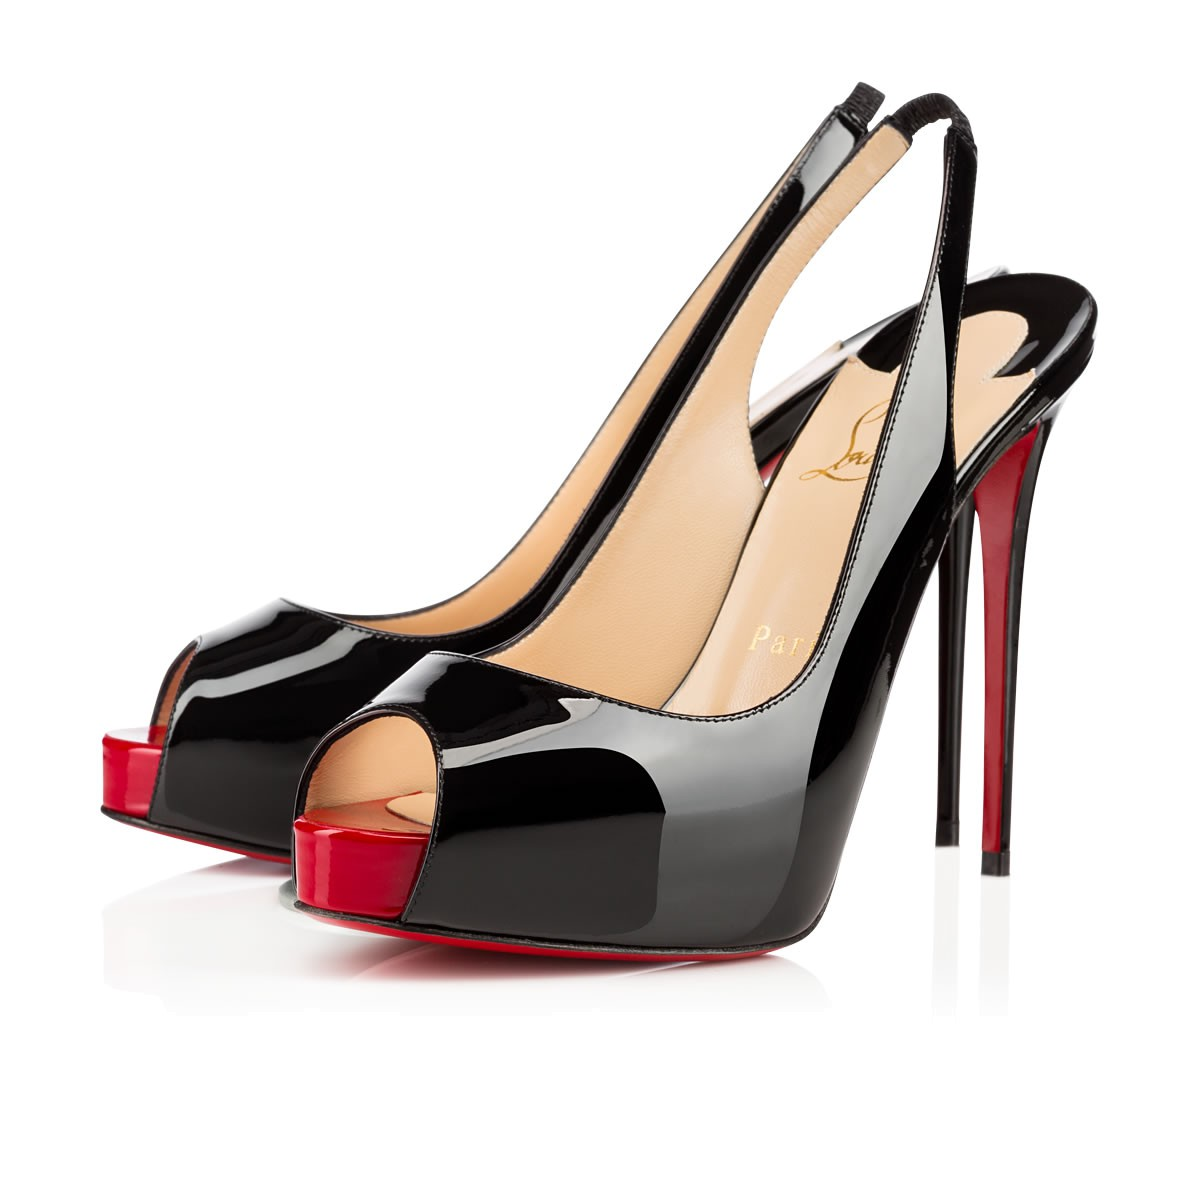 the best attitude 6de3c f52f5 PRIVATE NUMBER 120 Black Patent calfskin - Women Shoes - Christian Louboutin